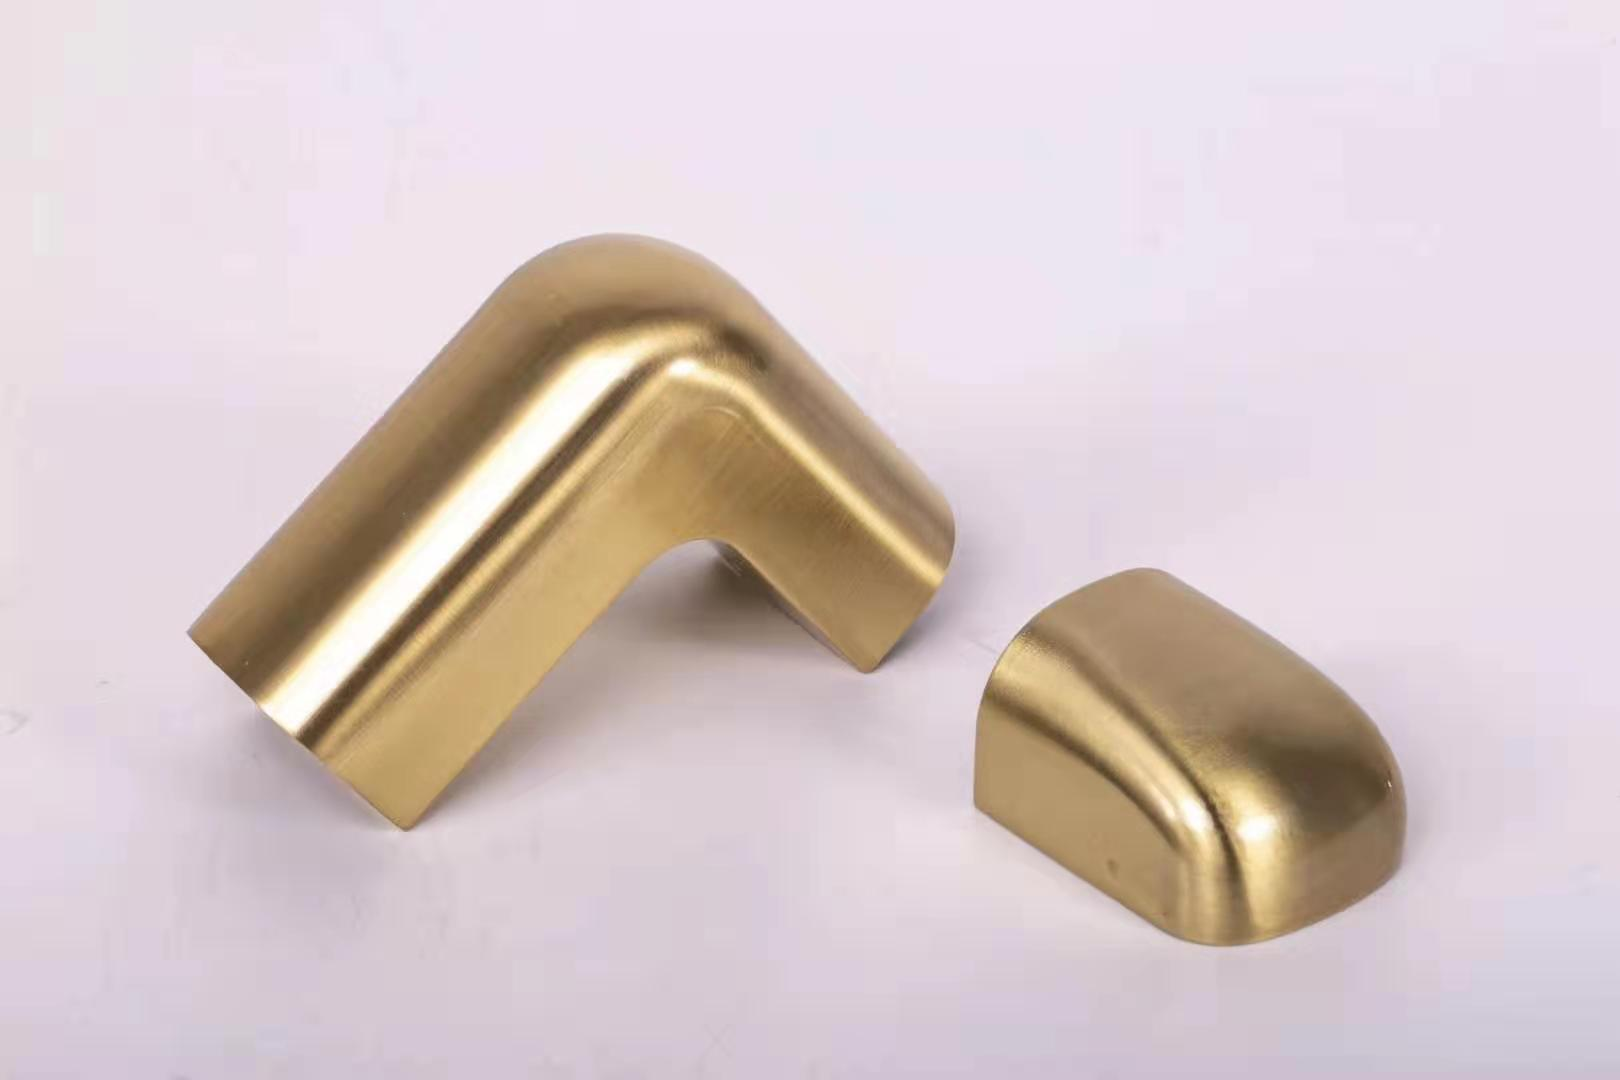 Zinc Alloy Gold Plated Sofa Legs,Table Legs,Brass Plated Legs - Buy Brass Sofa Feet,Cabinet Legs,Bronze Table Legs